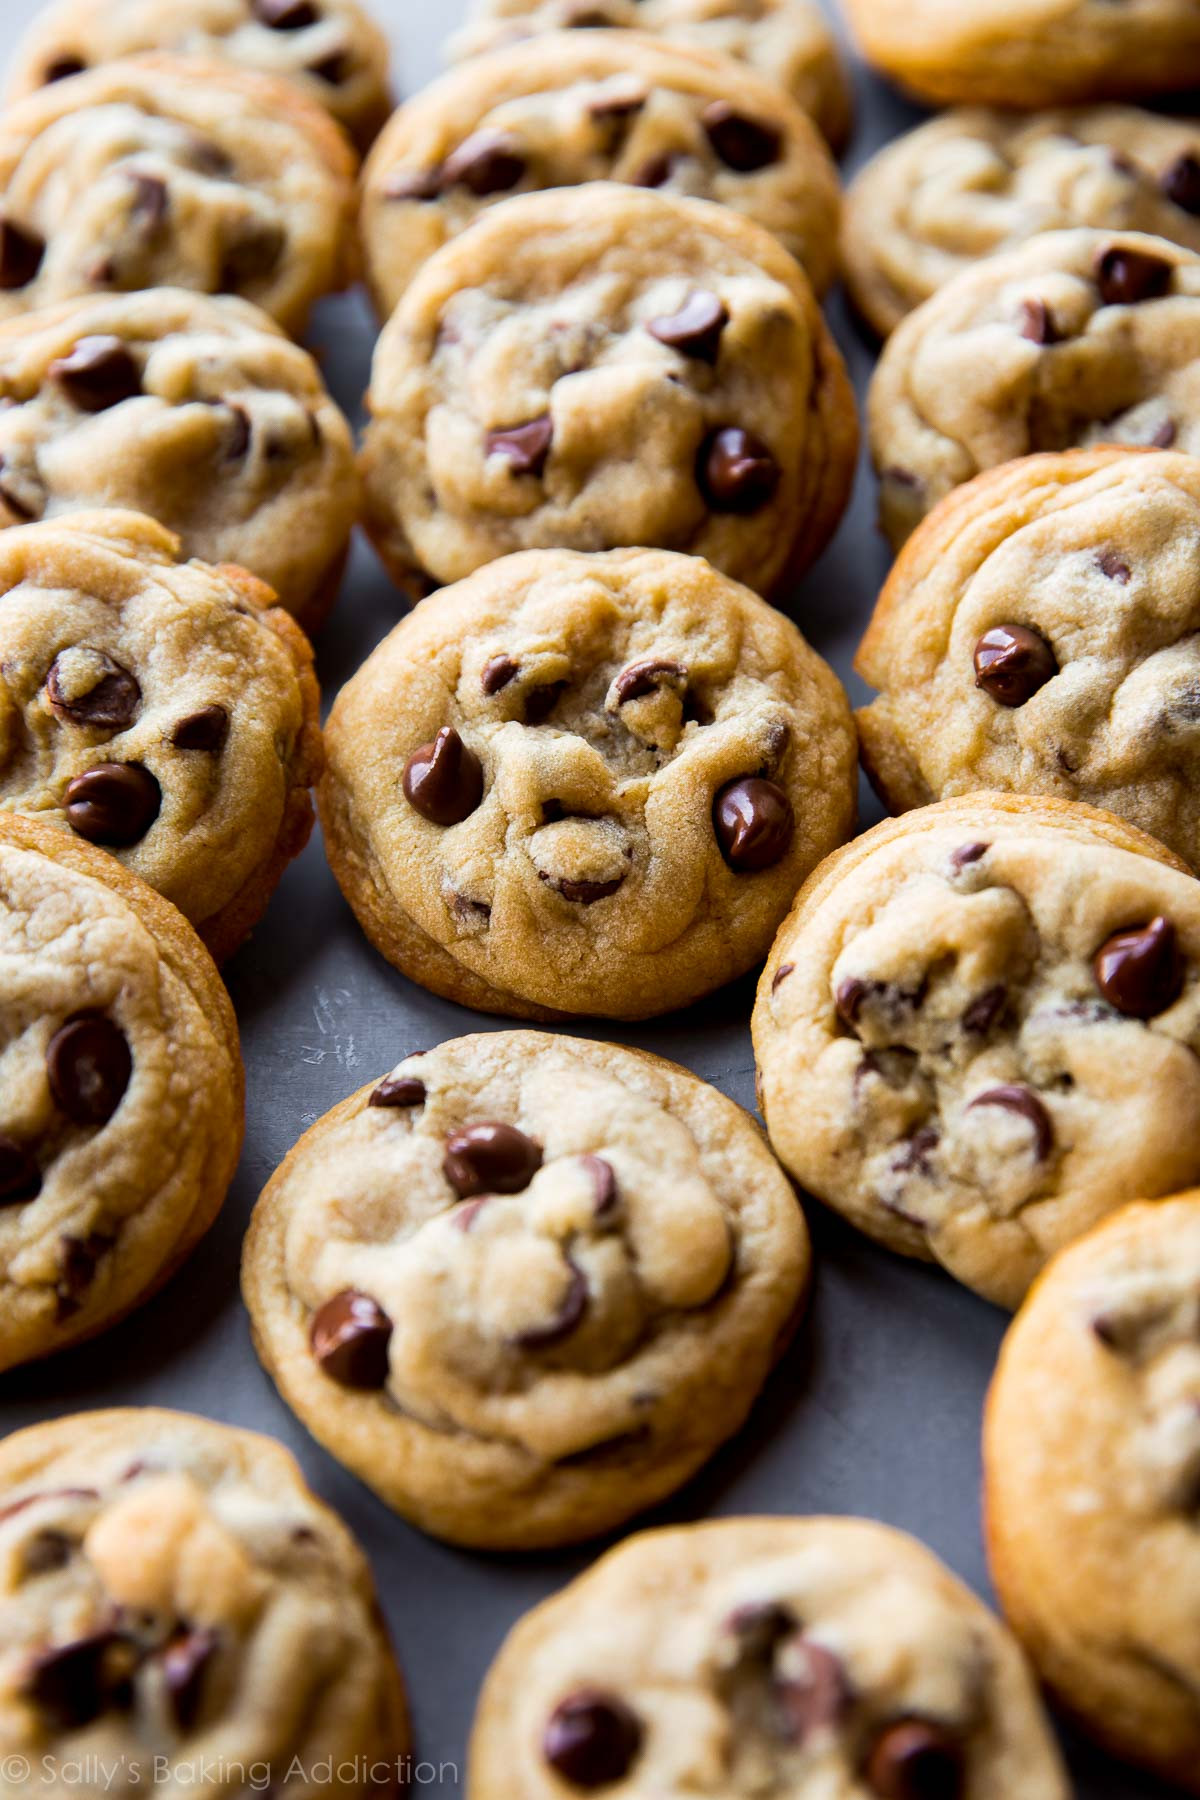 How To Bake Chocolate Chip Cookies  The Best Soft Chocolate Chip Cookies Sallys Baking Addiction